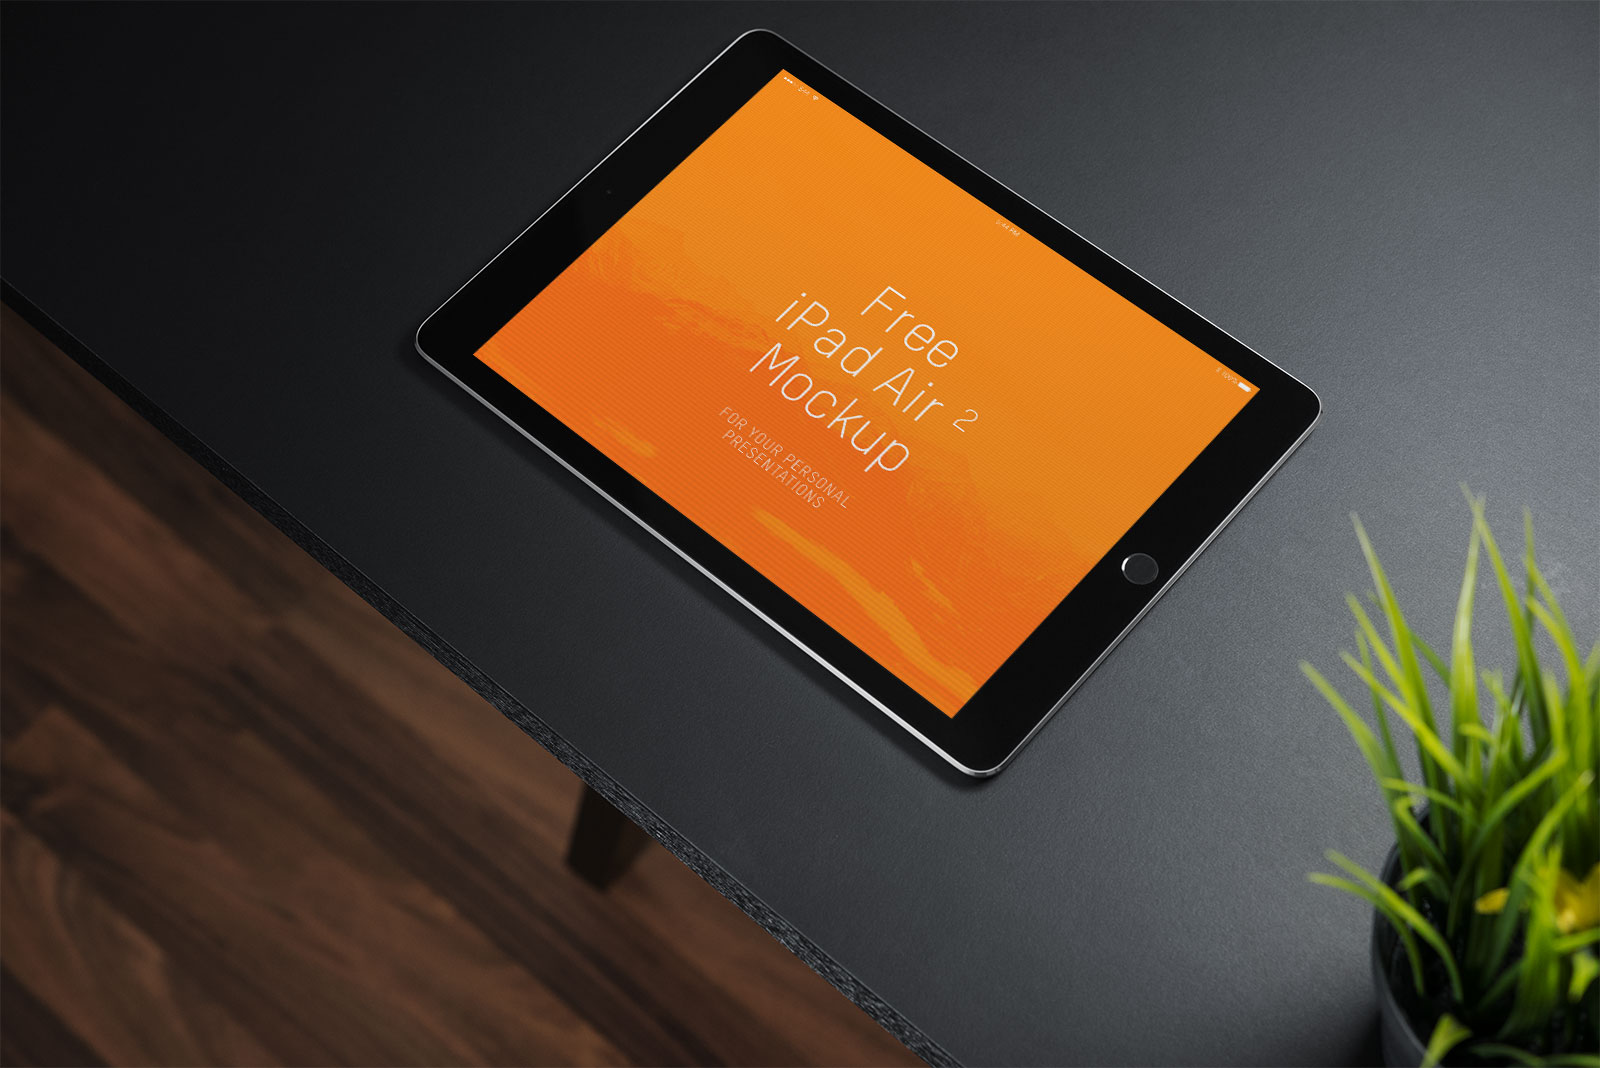 Free-iPad-2-photo-mockup-PSD-file